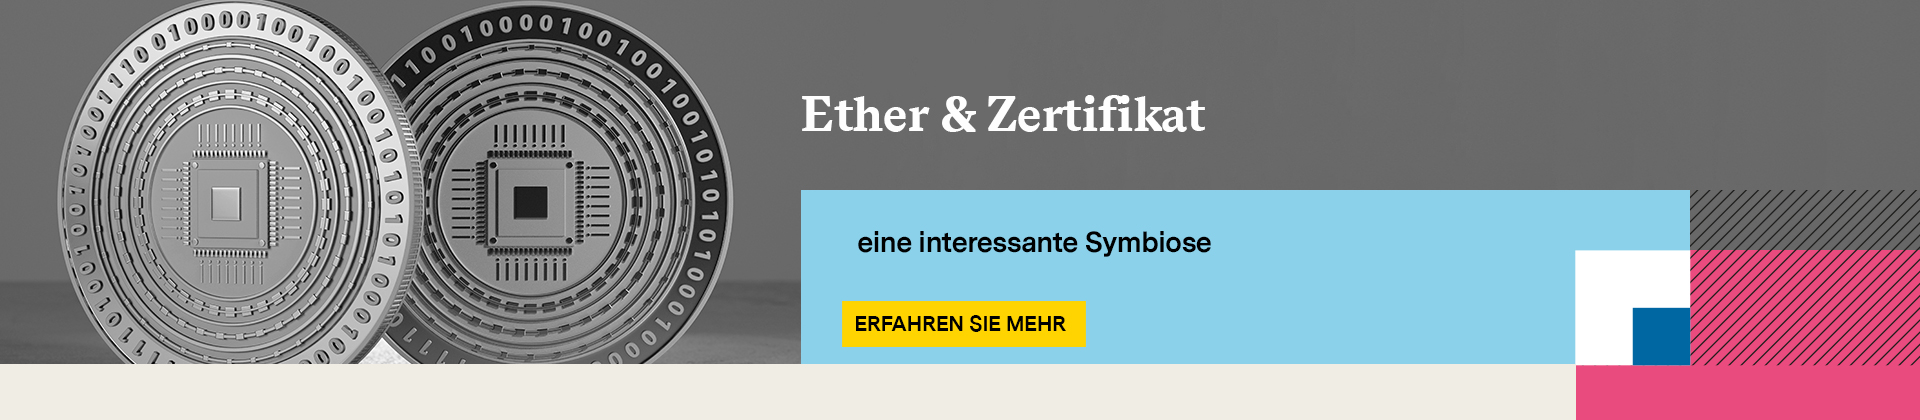 Ether & Zertifikate